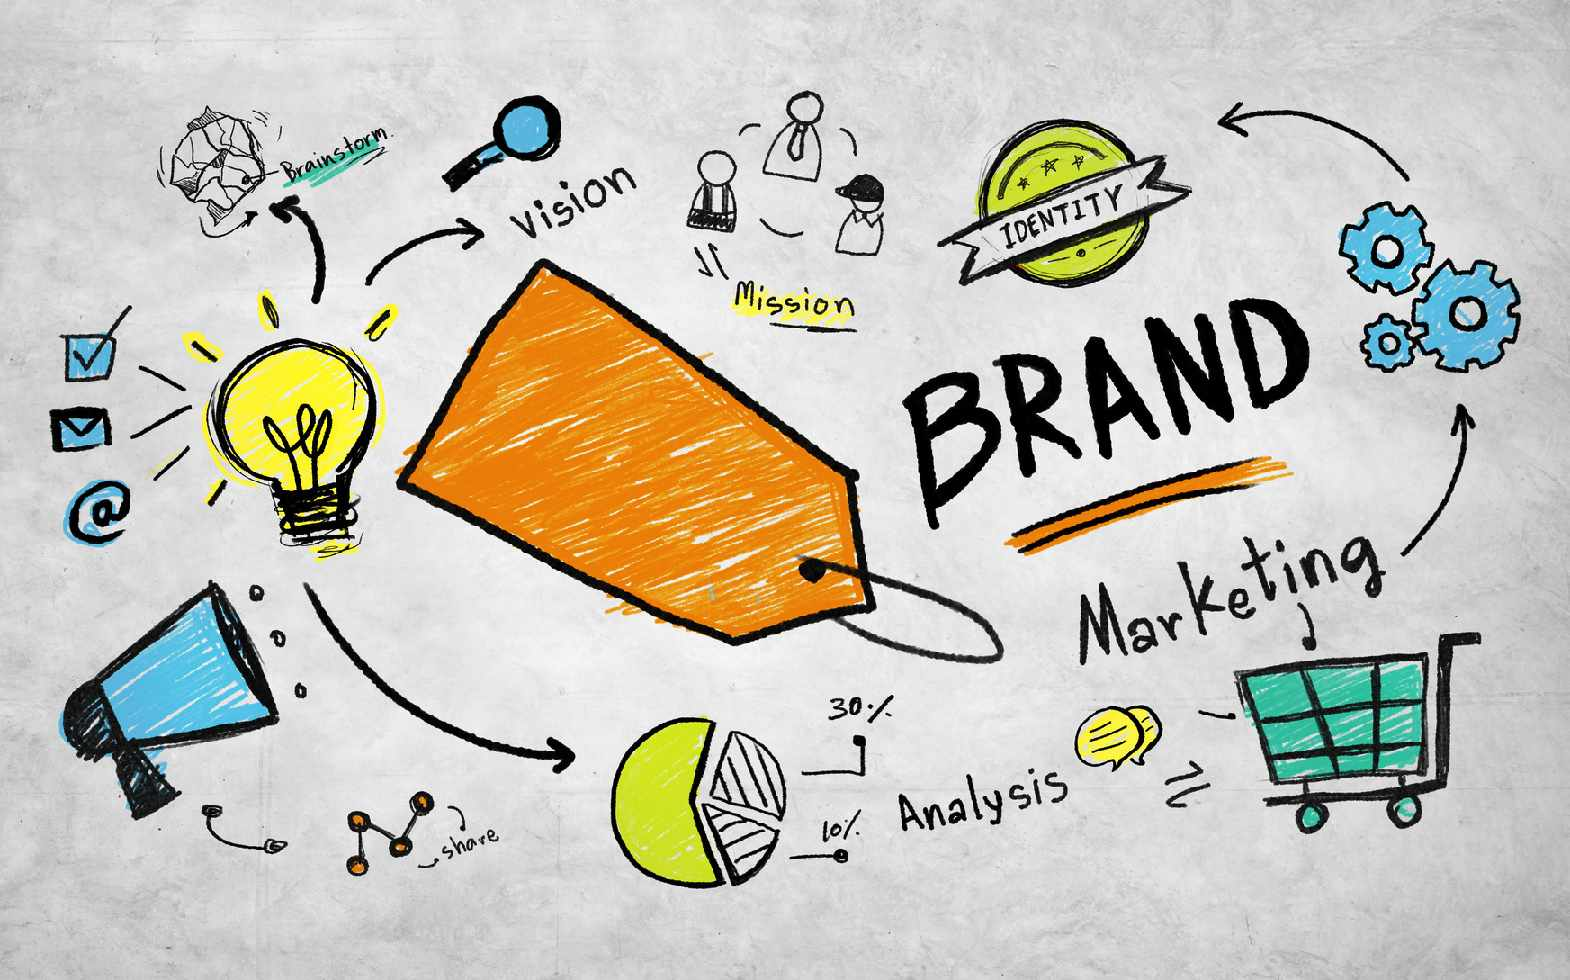 How a consistent branding across all channels inspires trust